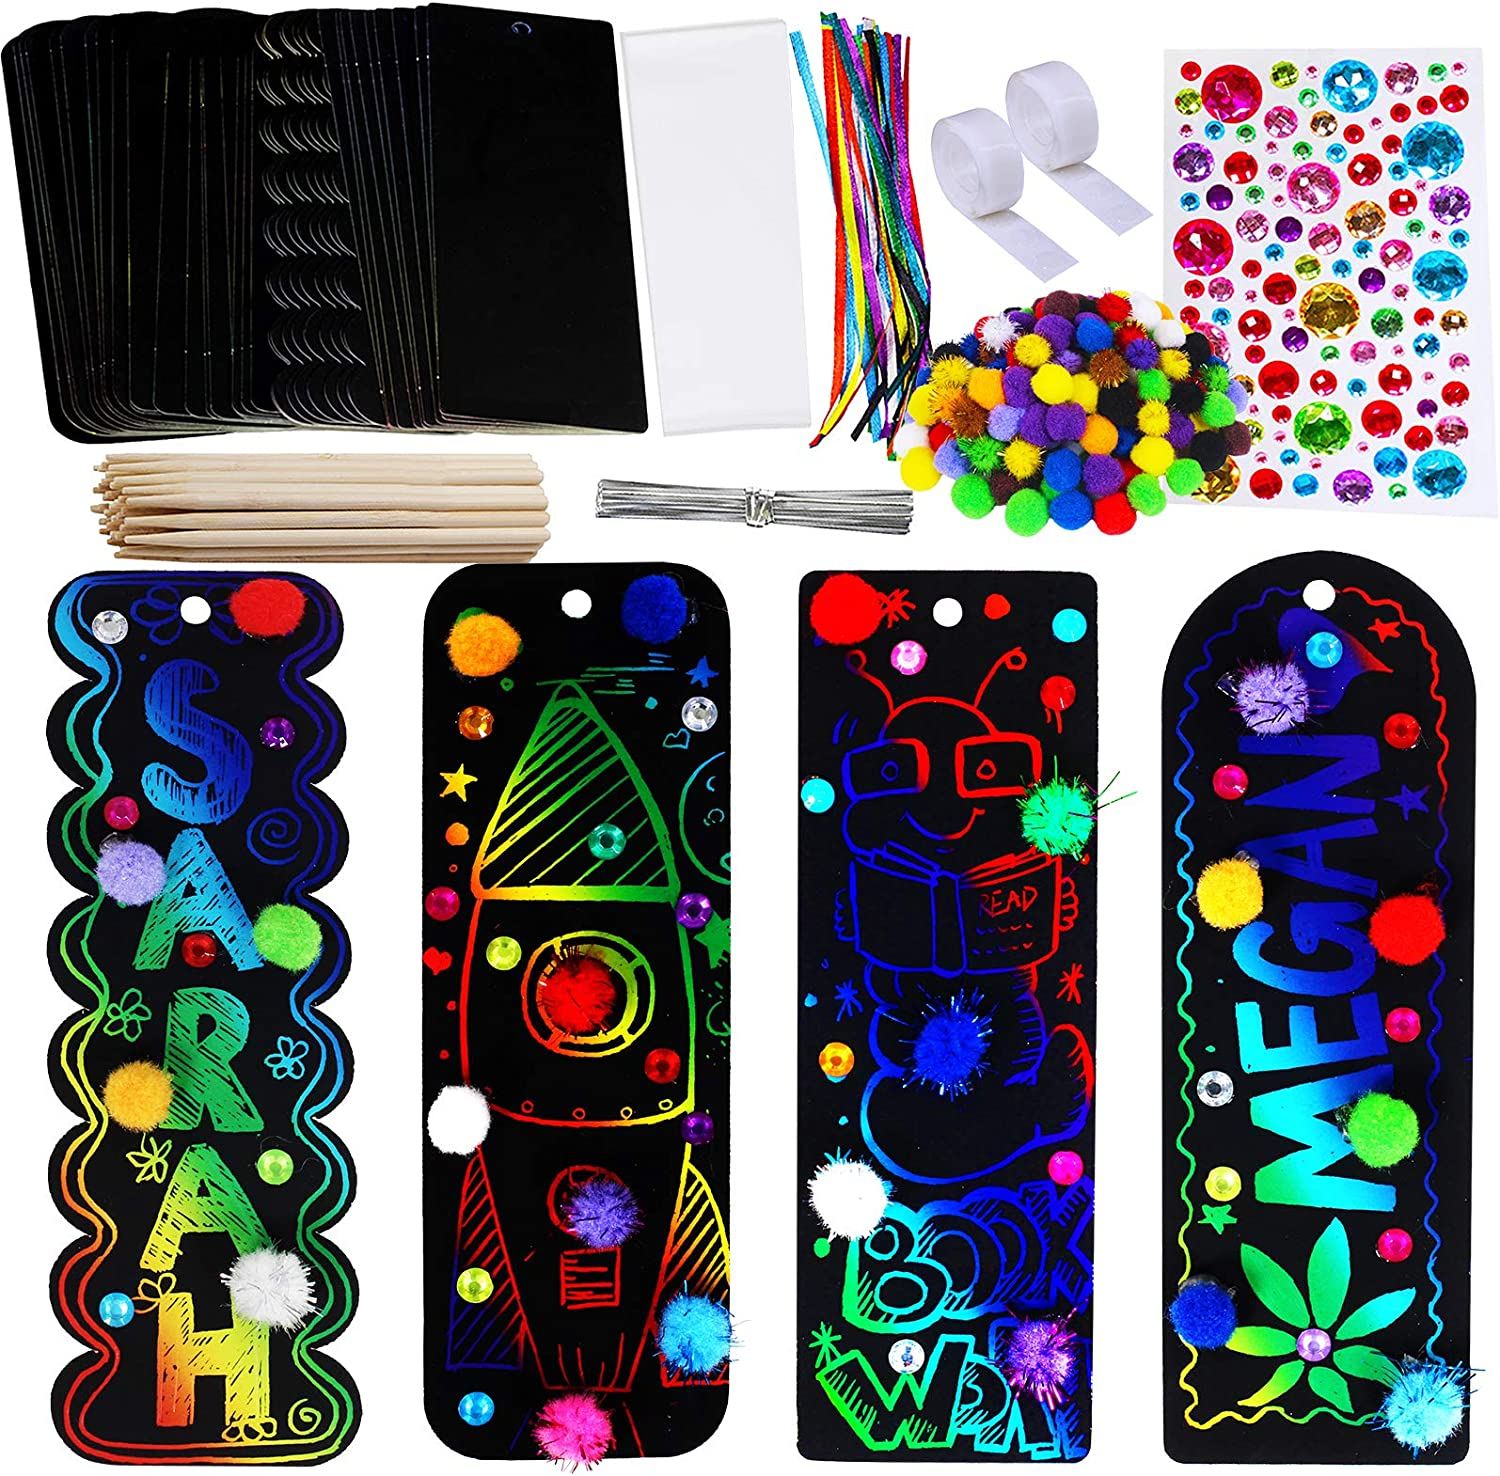 Winlyn 36 Max Omaha Mall 59% OFF Sets 4 Styles Magic Rainbow Bookmarks Making K Scratch